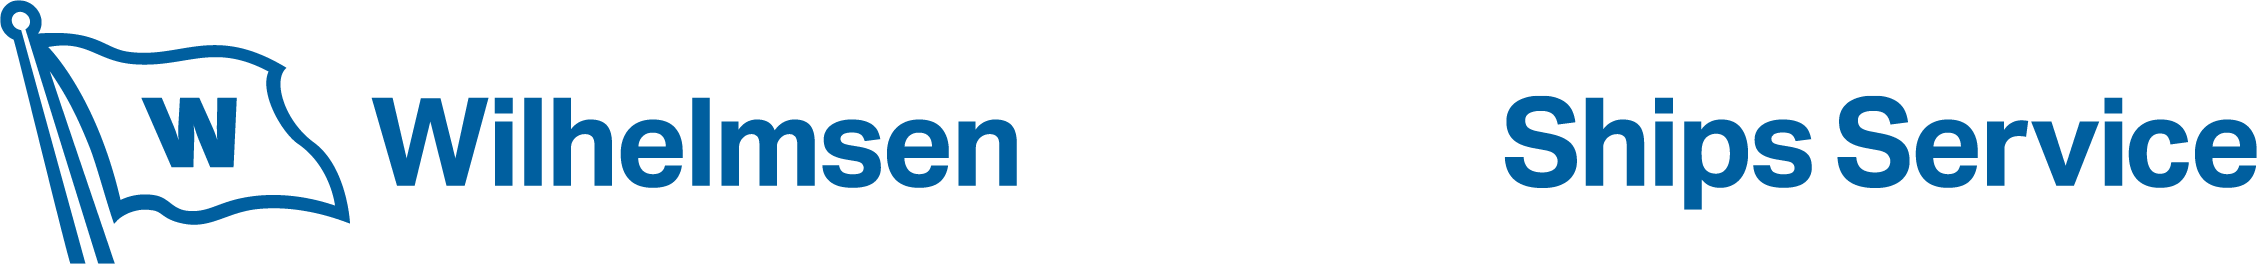 Wilhelmsen Ship Services logo